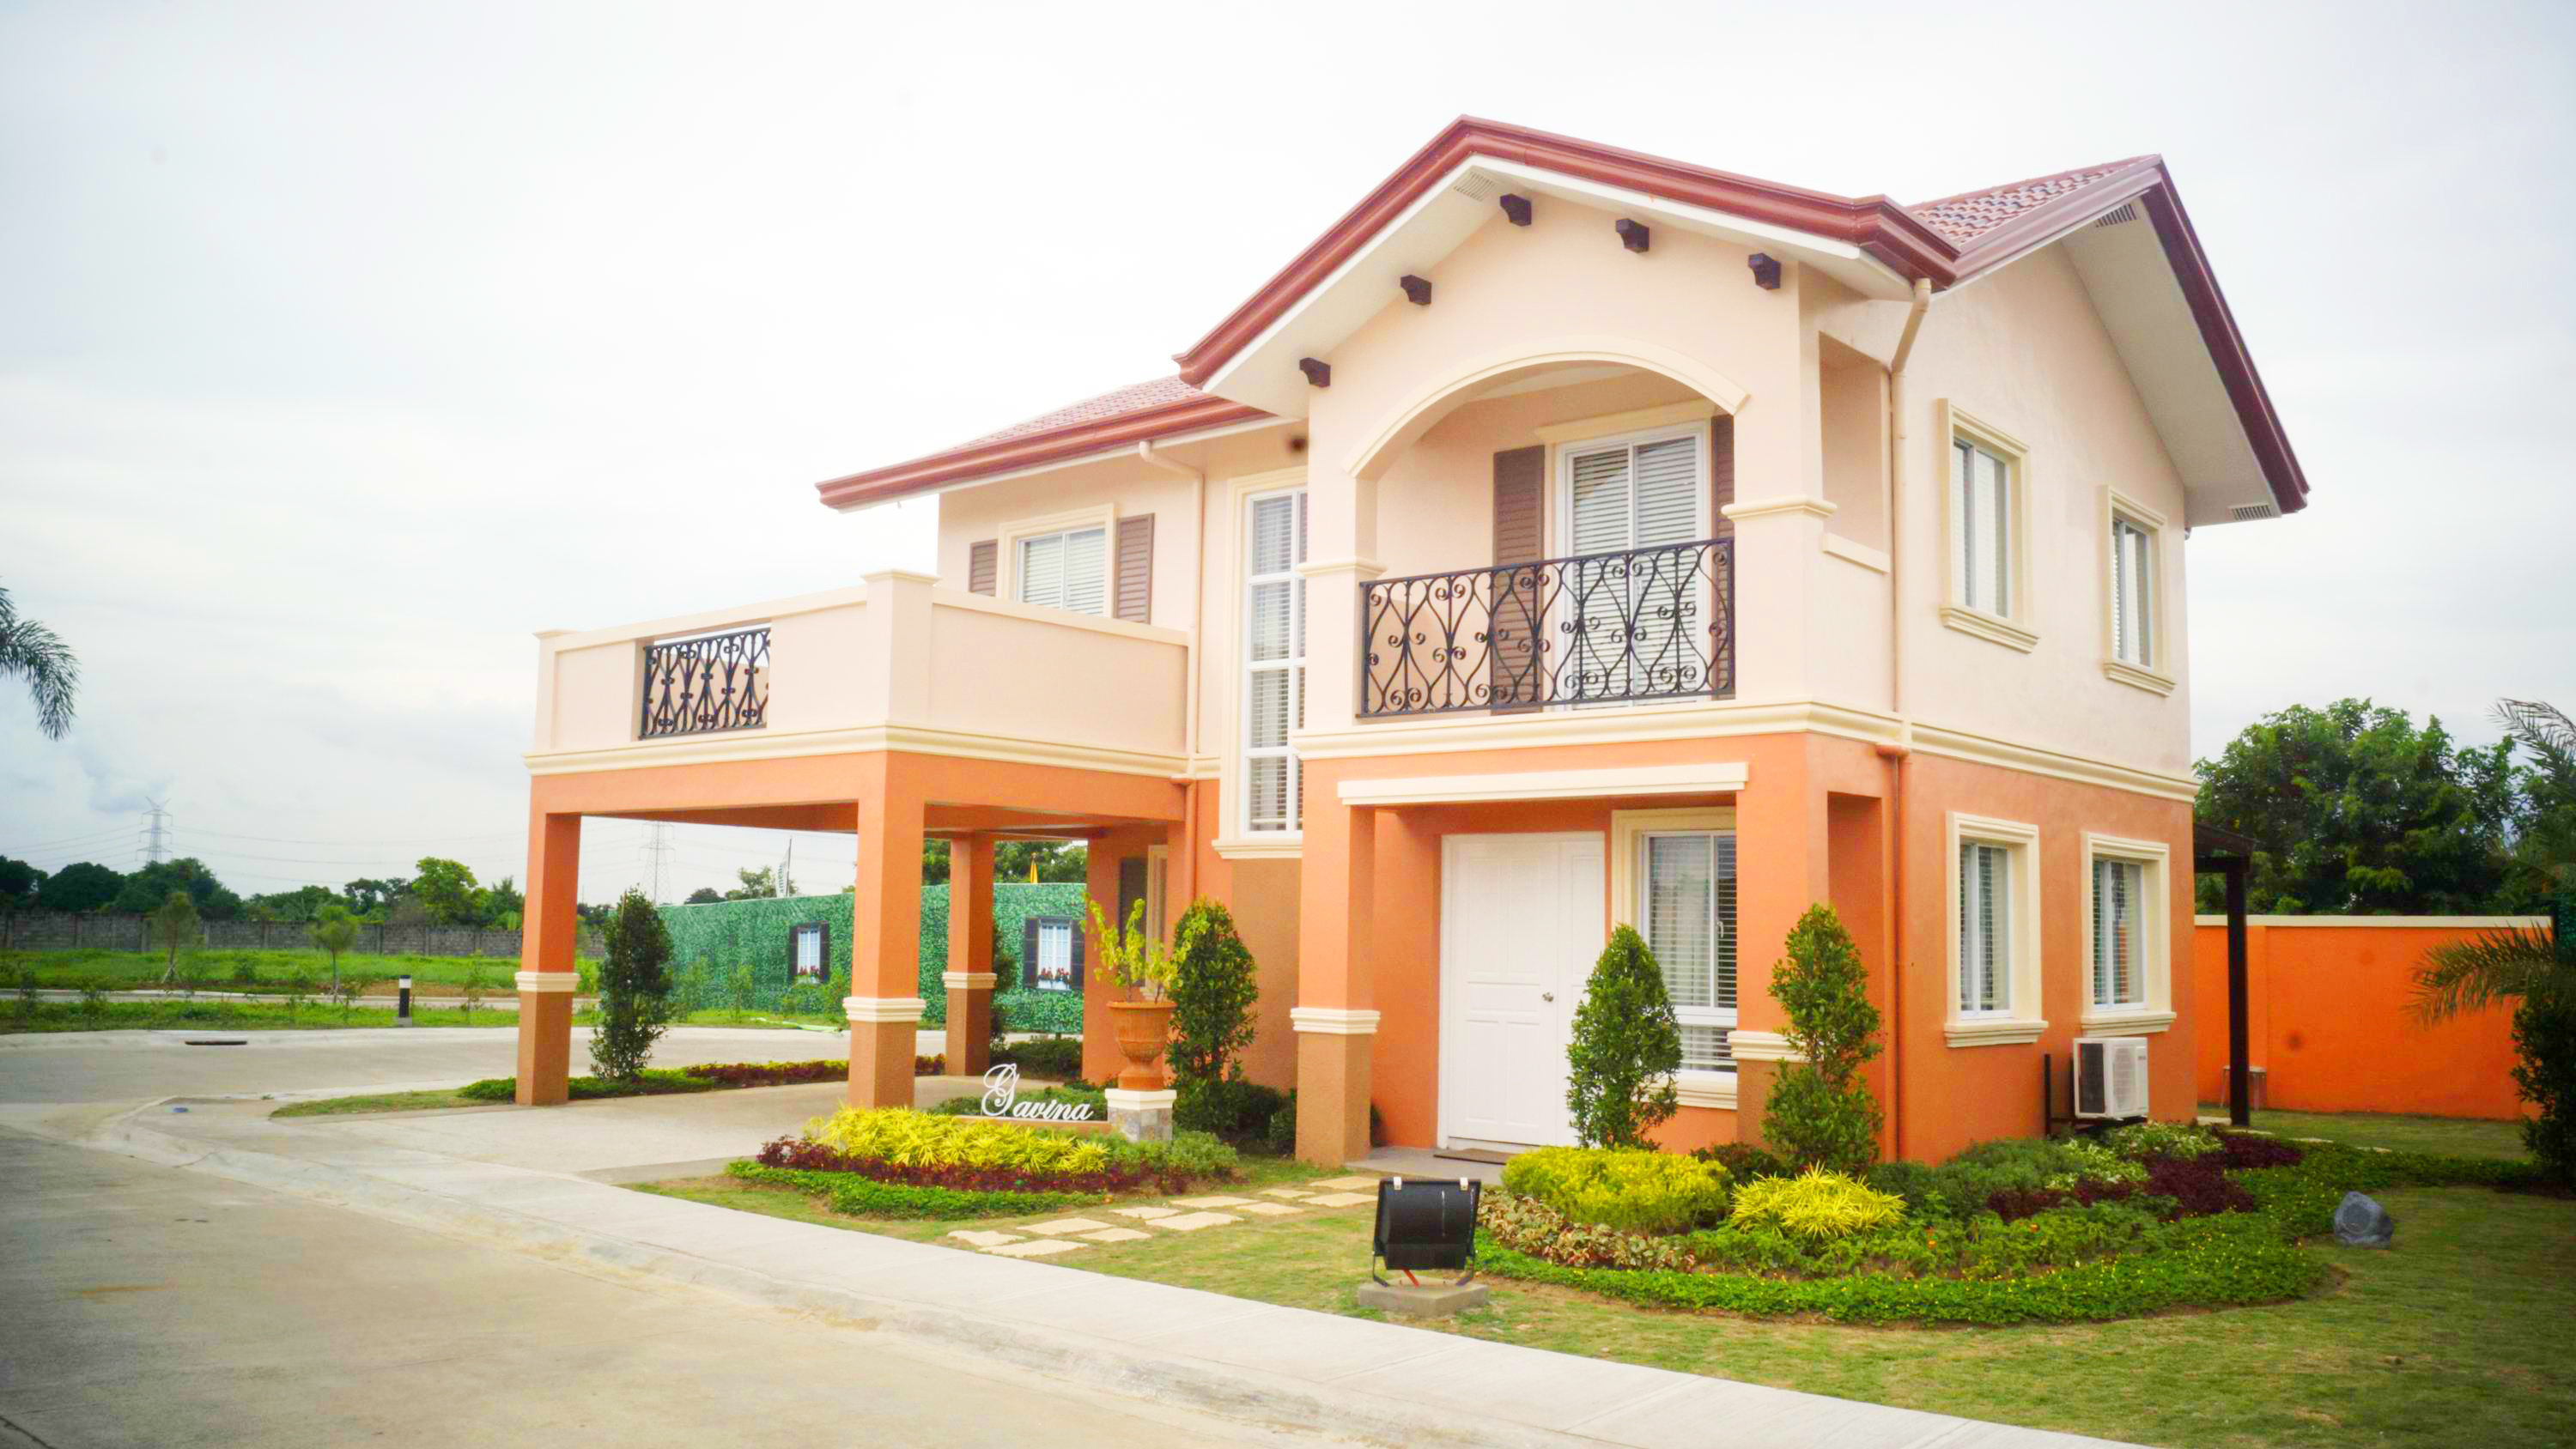 Camella homes lipa house and lot for sale batangas house for Camella homes design pictures